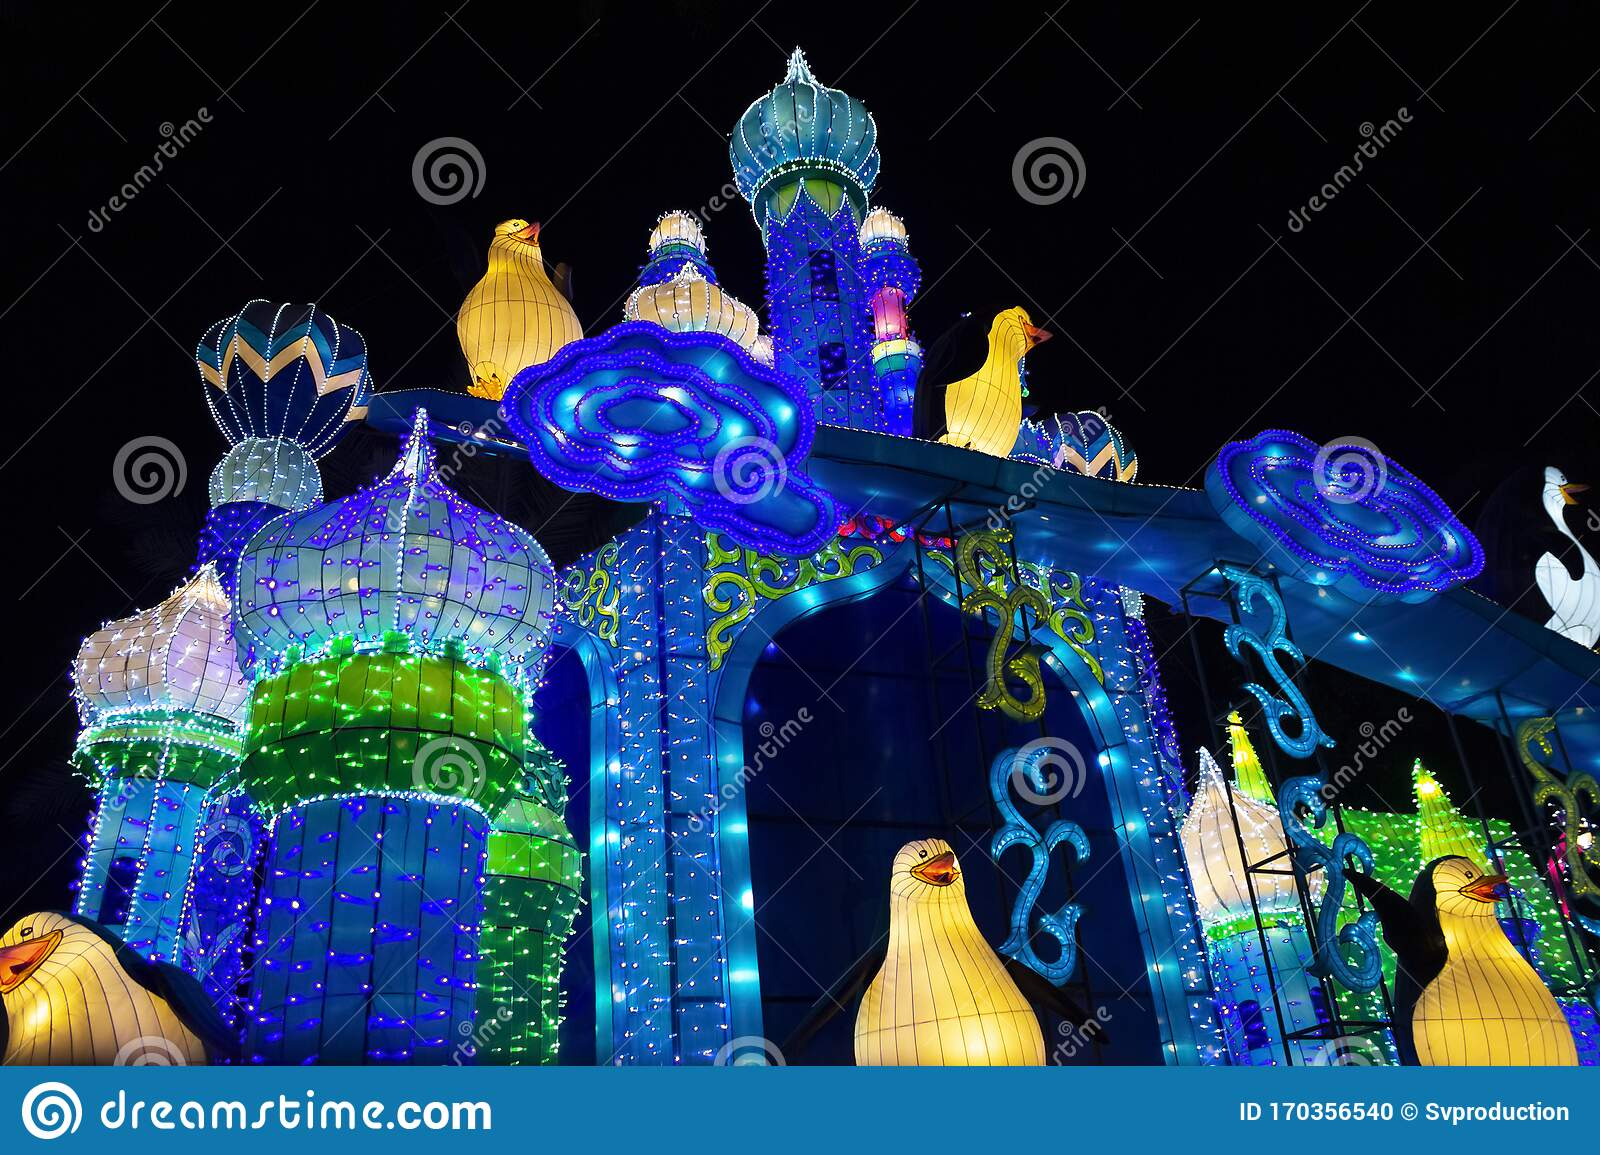 Dubai Garden Glow In Uae Editorial Image Image Of Arab 170356540